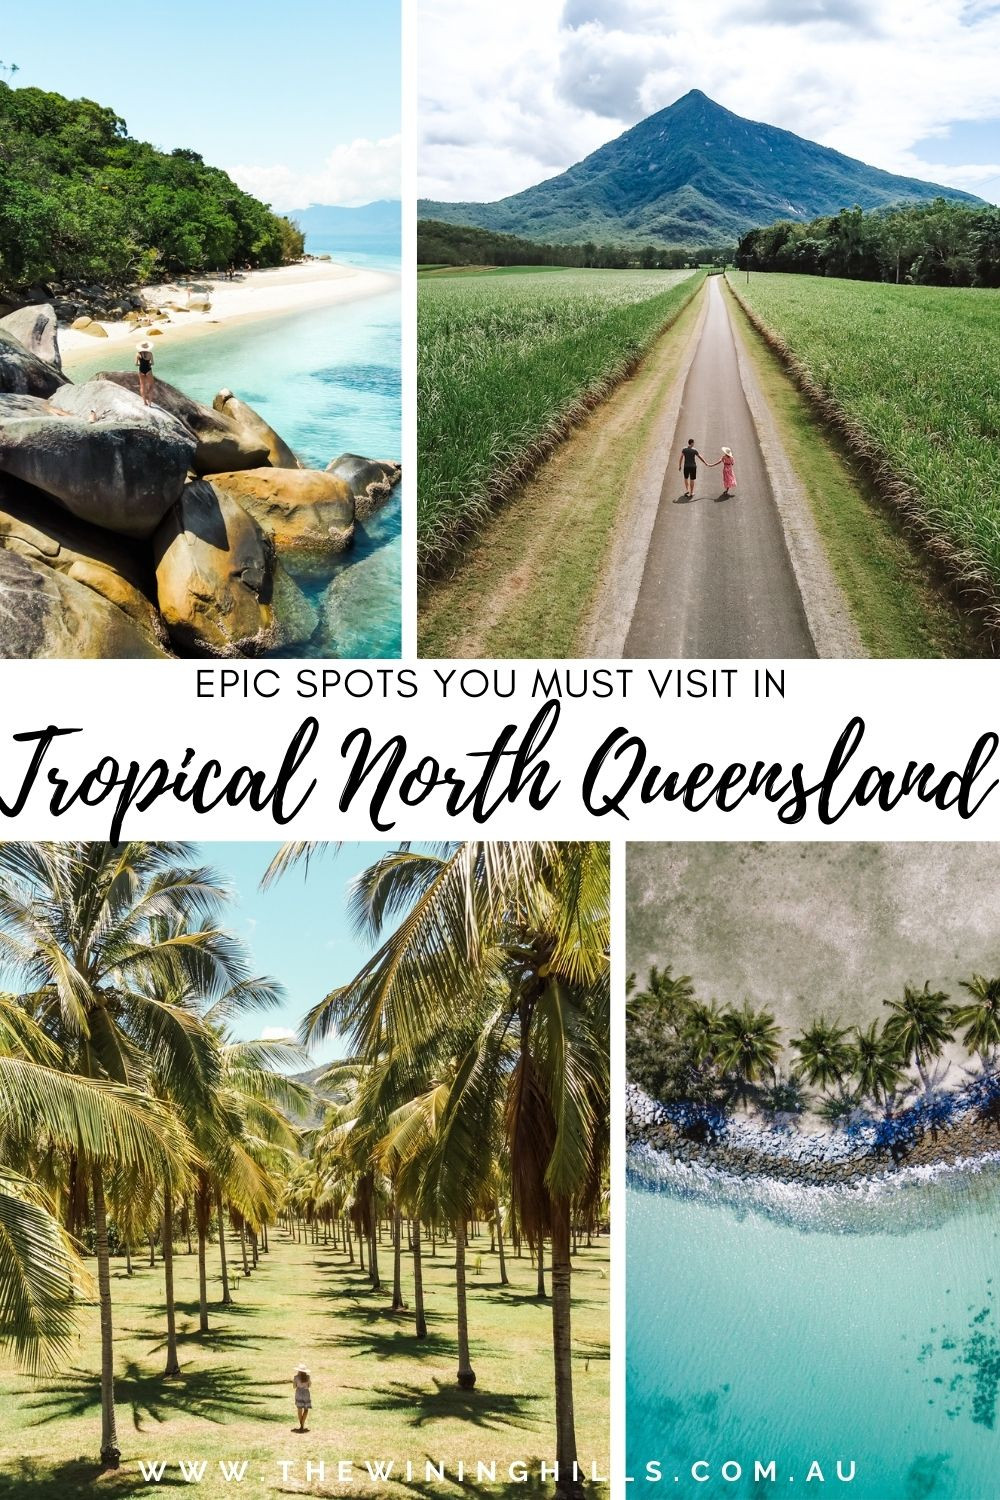 Epic spots you must visit in Tropical North Queensland, Australia like Windin Falls, Palm Cove, Port Douglas, Fitzroy Island, Atherton Tableland, Millaa Millaa Falls, and more!